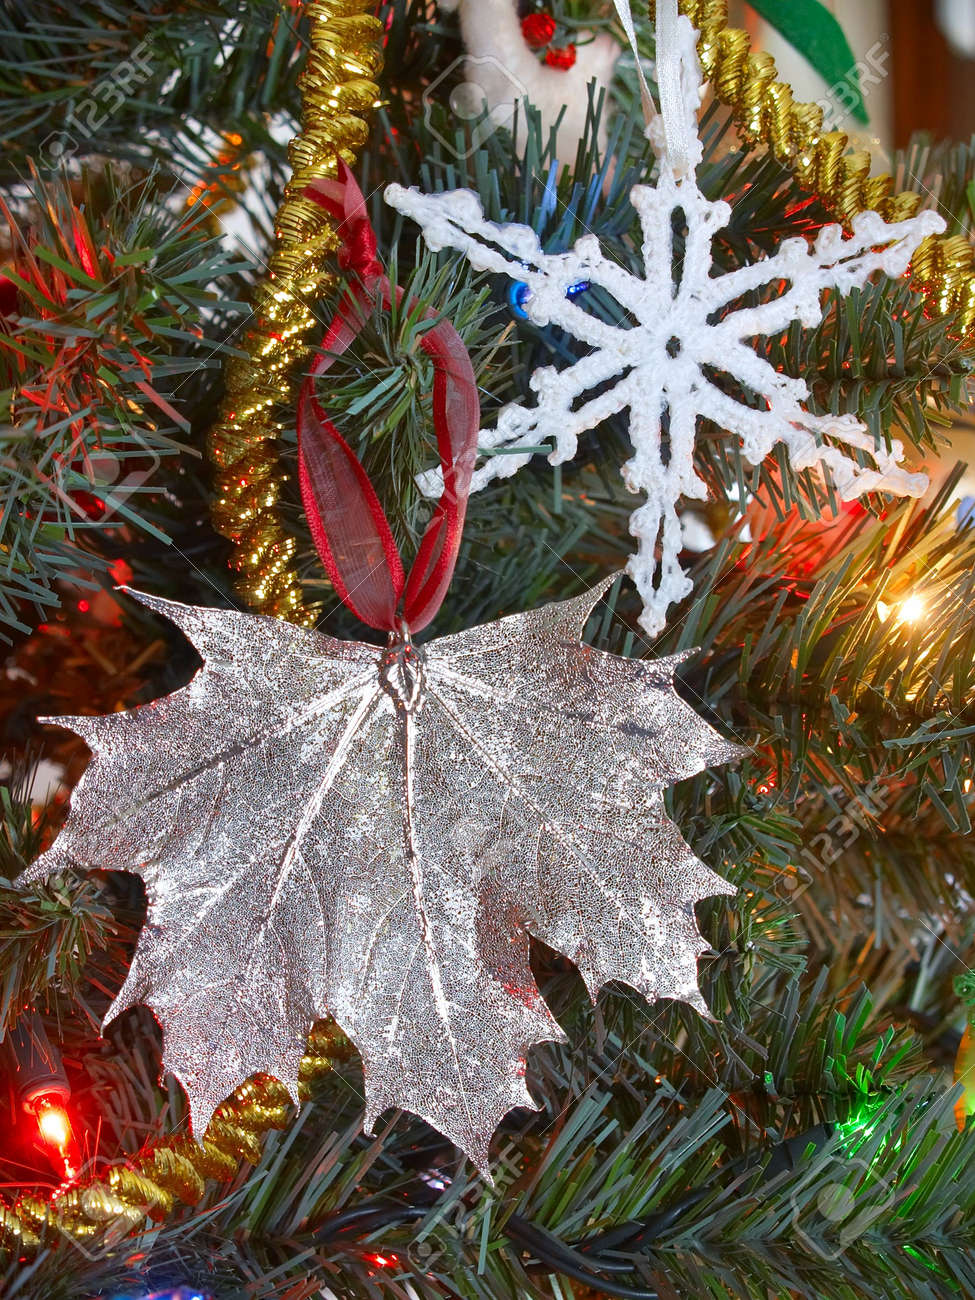 silver maple leaf ornament and fabric snowflake on a christmas stock photo picture and royalty free image image 3179851 silver maple leaf ornament and fabric snowflake on a christmas